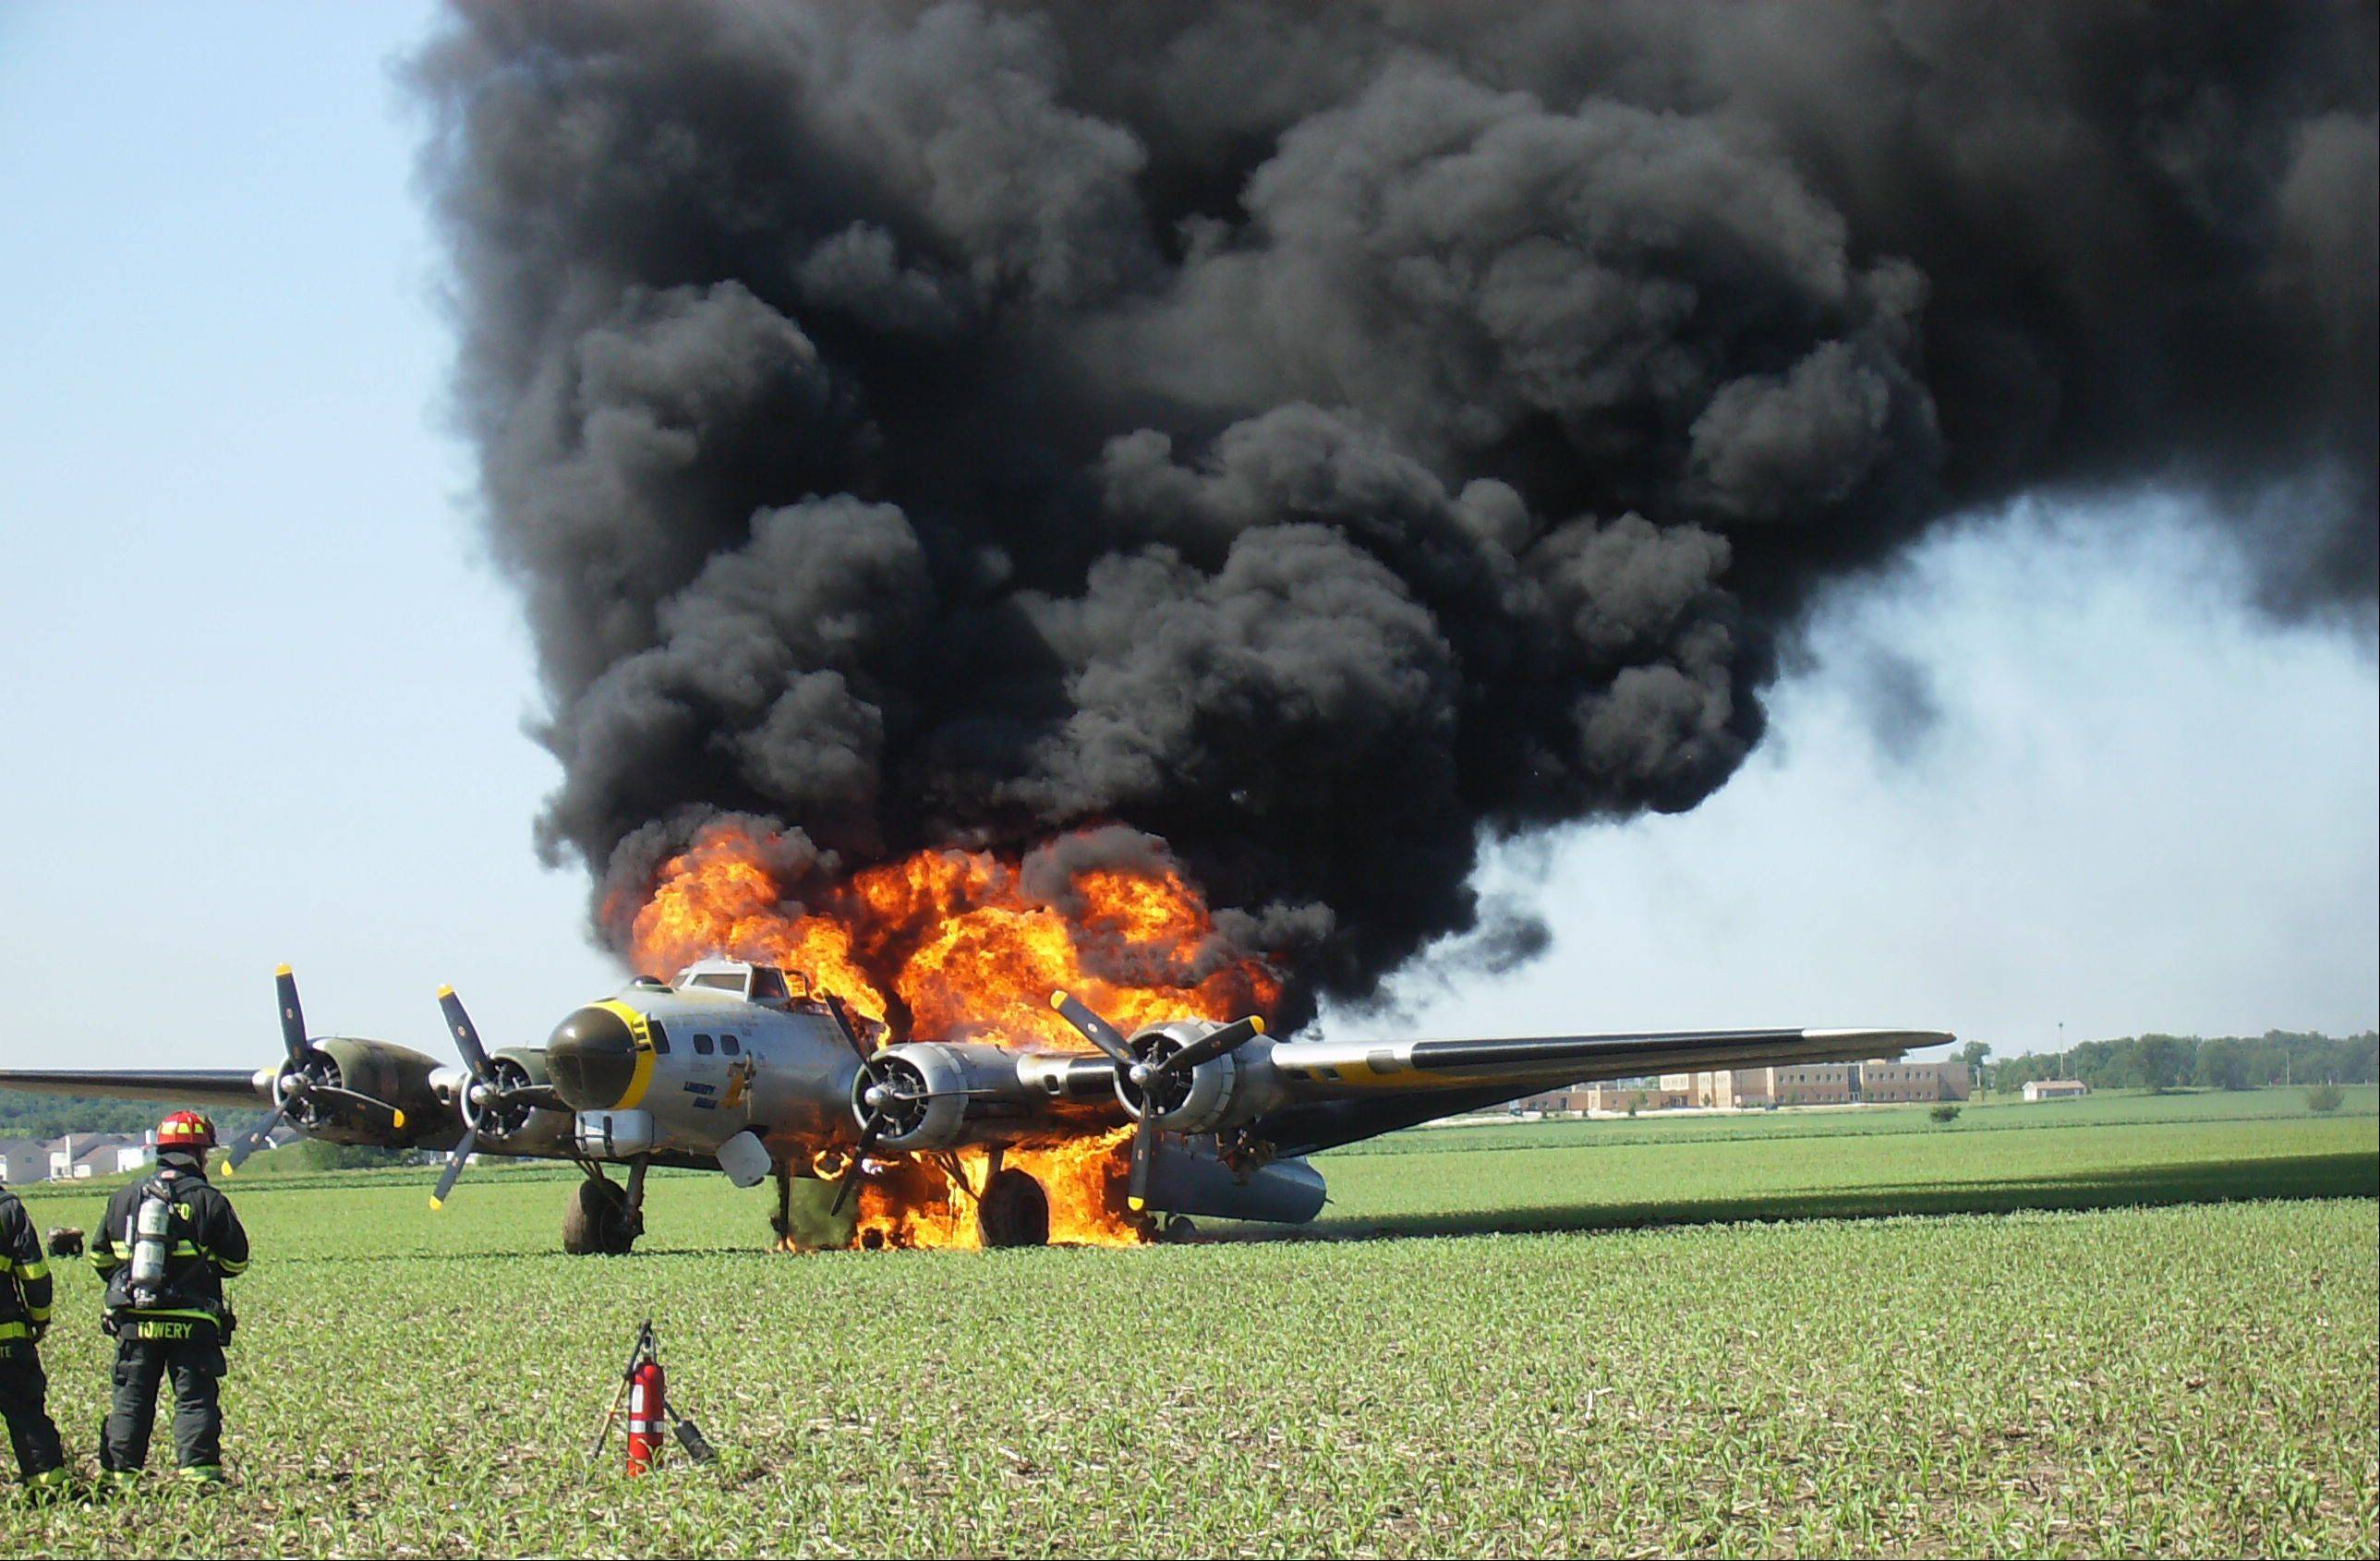 NTSB report sheds little light on ill-fated B-17